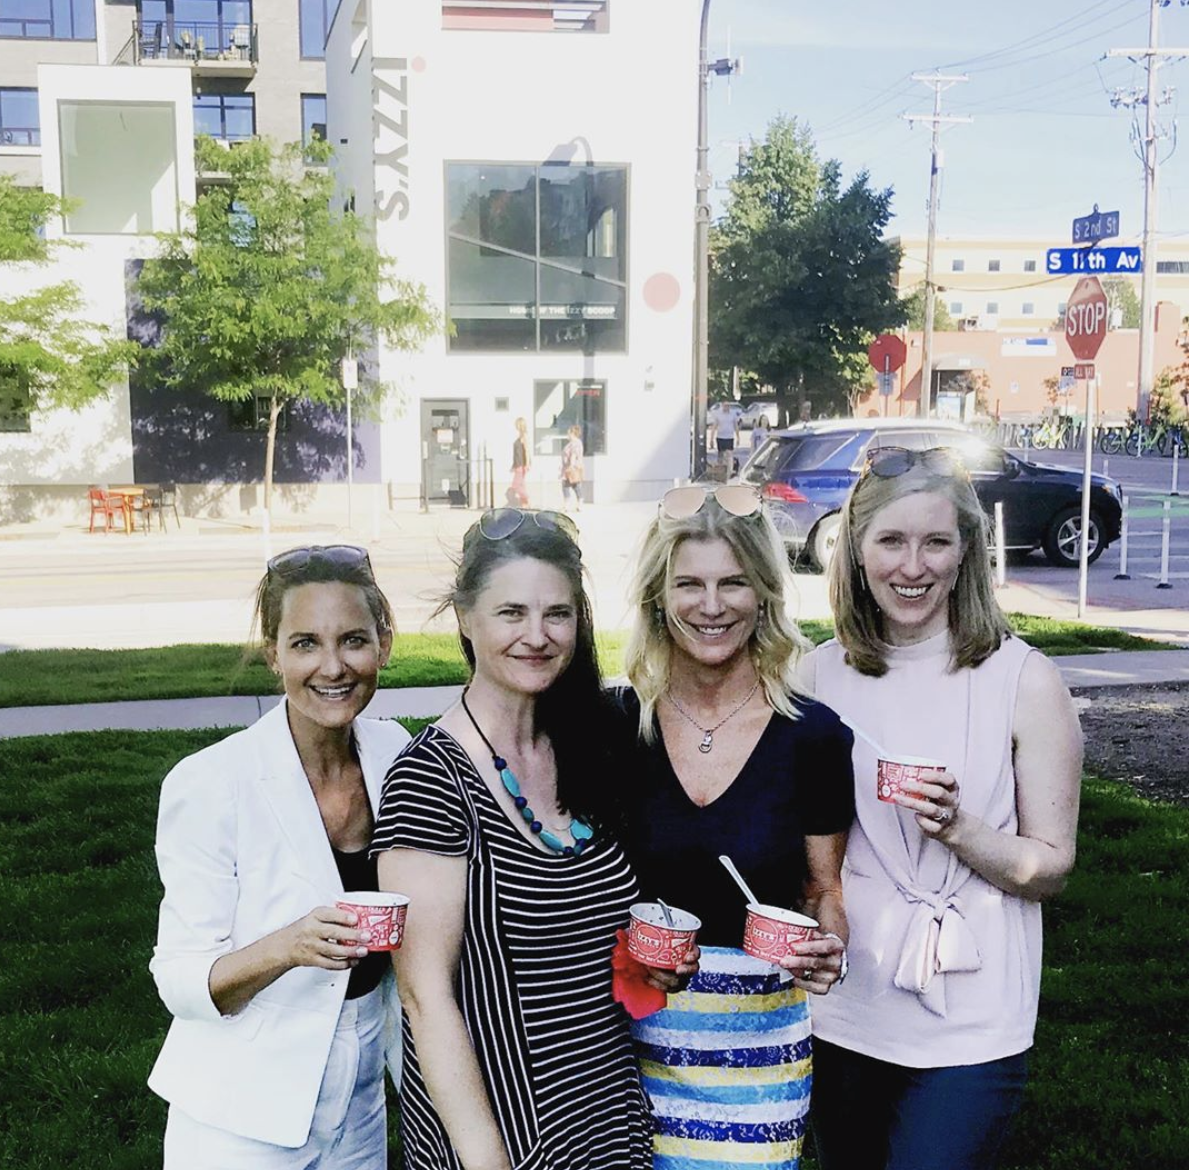 Cindy, Pam, Lynn, and Sarah in front of Izzy's in Gold Medal Park, 2019.